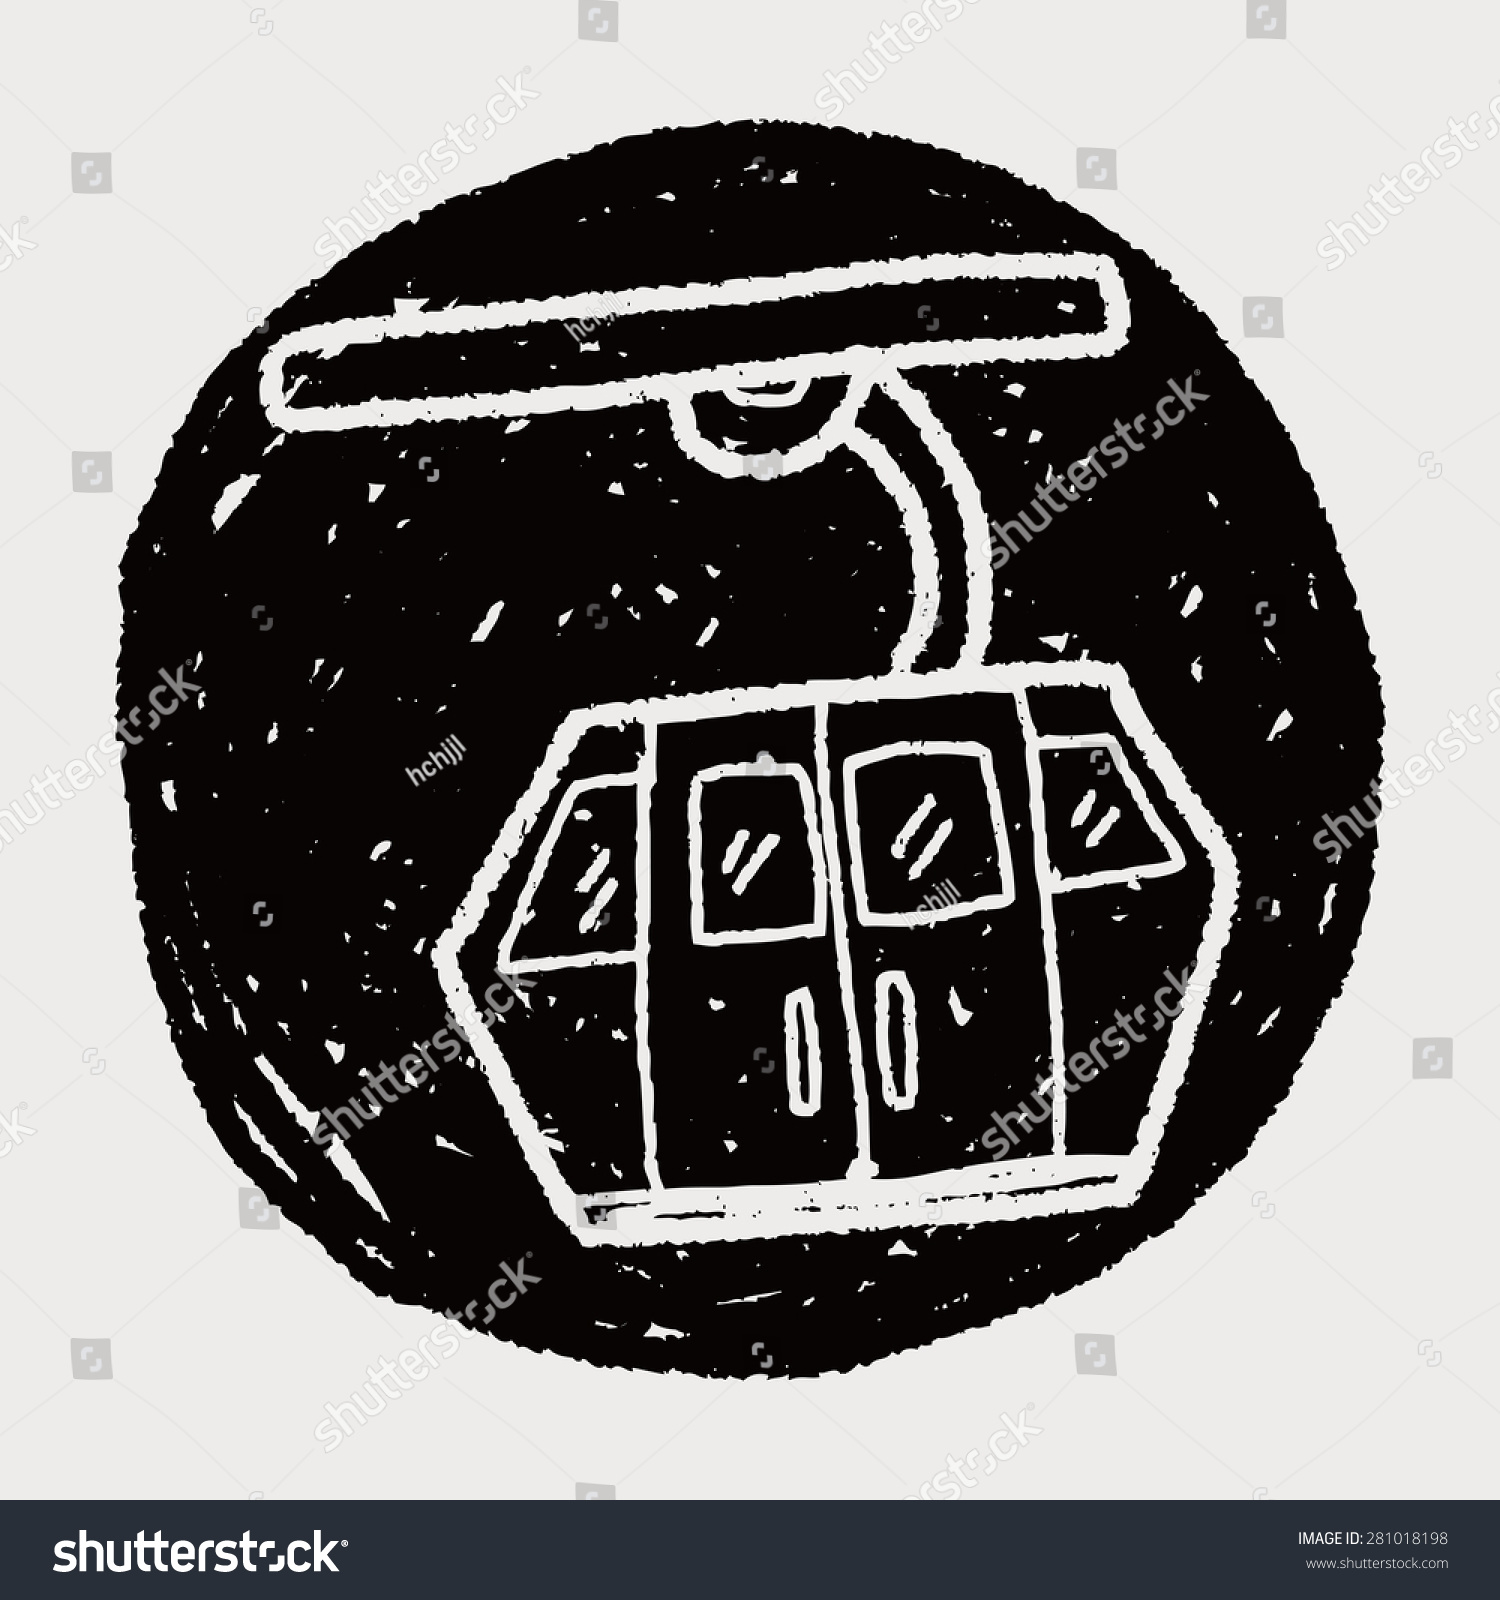 Cable Car Doodle Stock Illustration 281018198 - Shutterstock